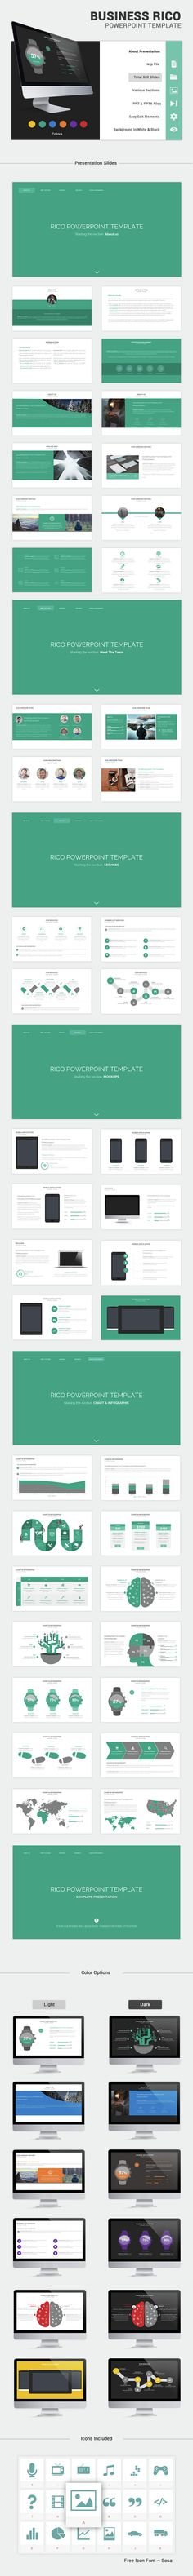 material presentation templateswelcome to material design, Presentation templates